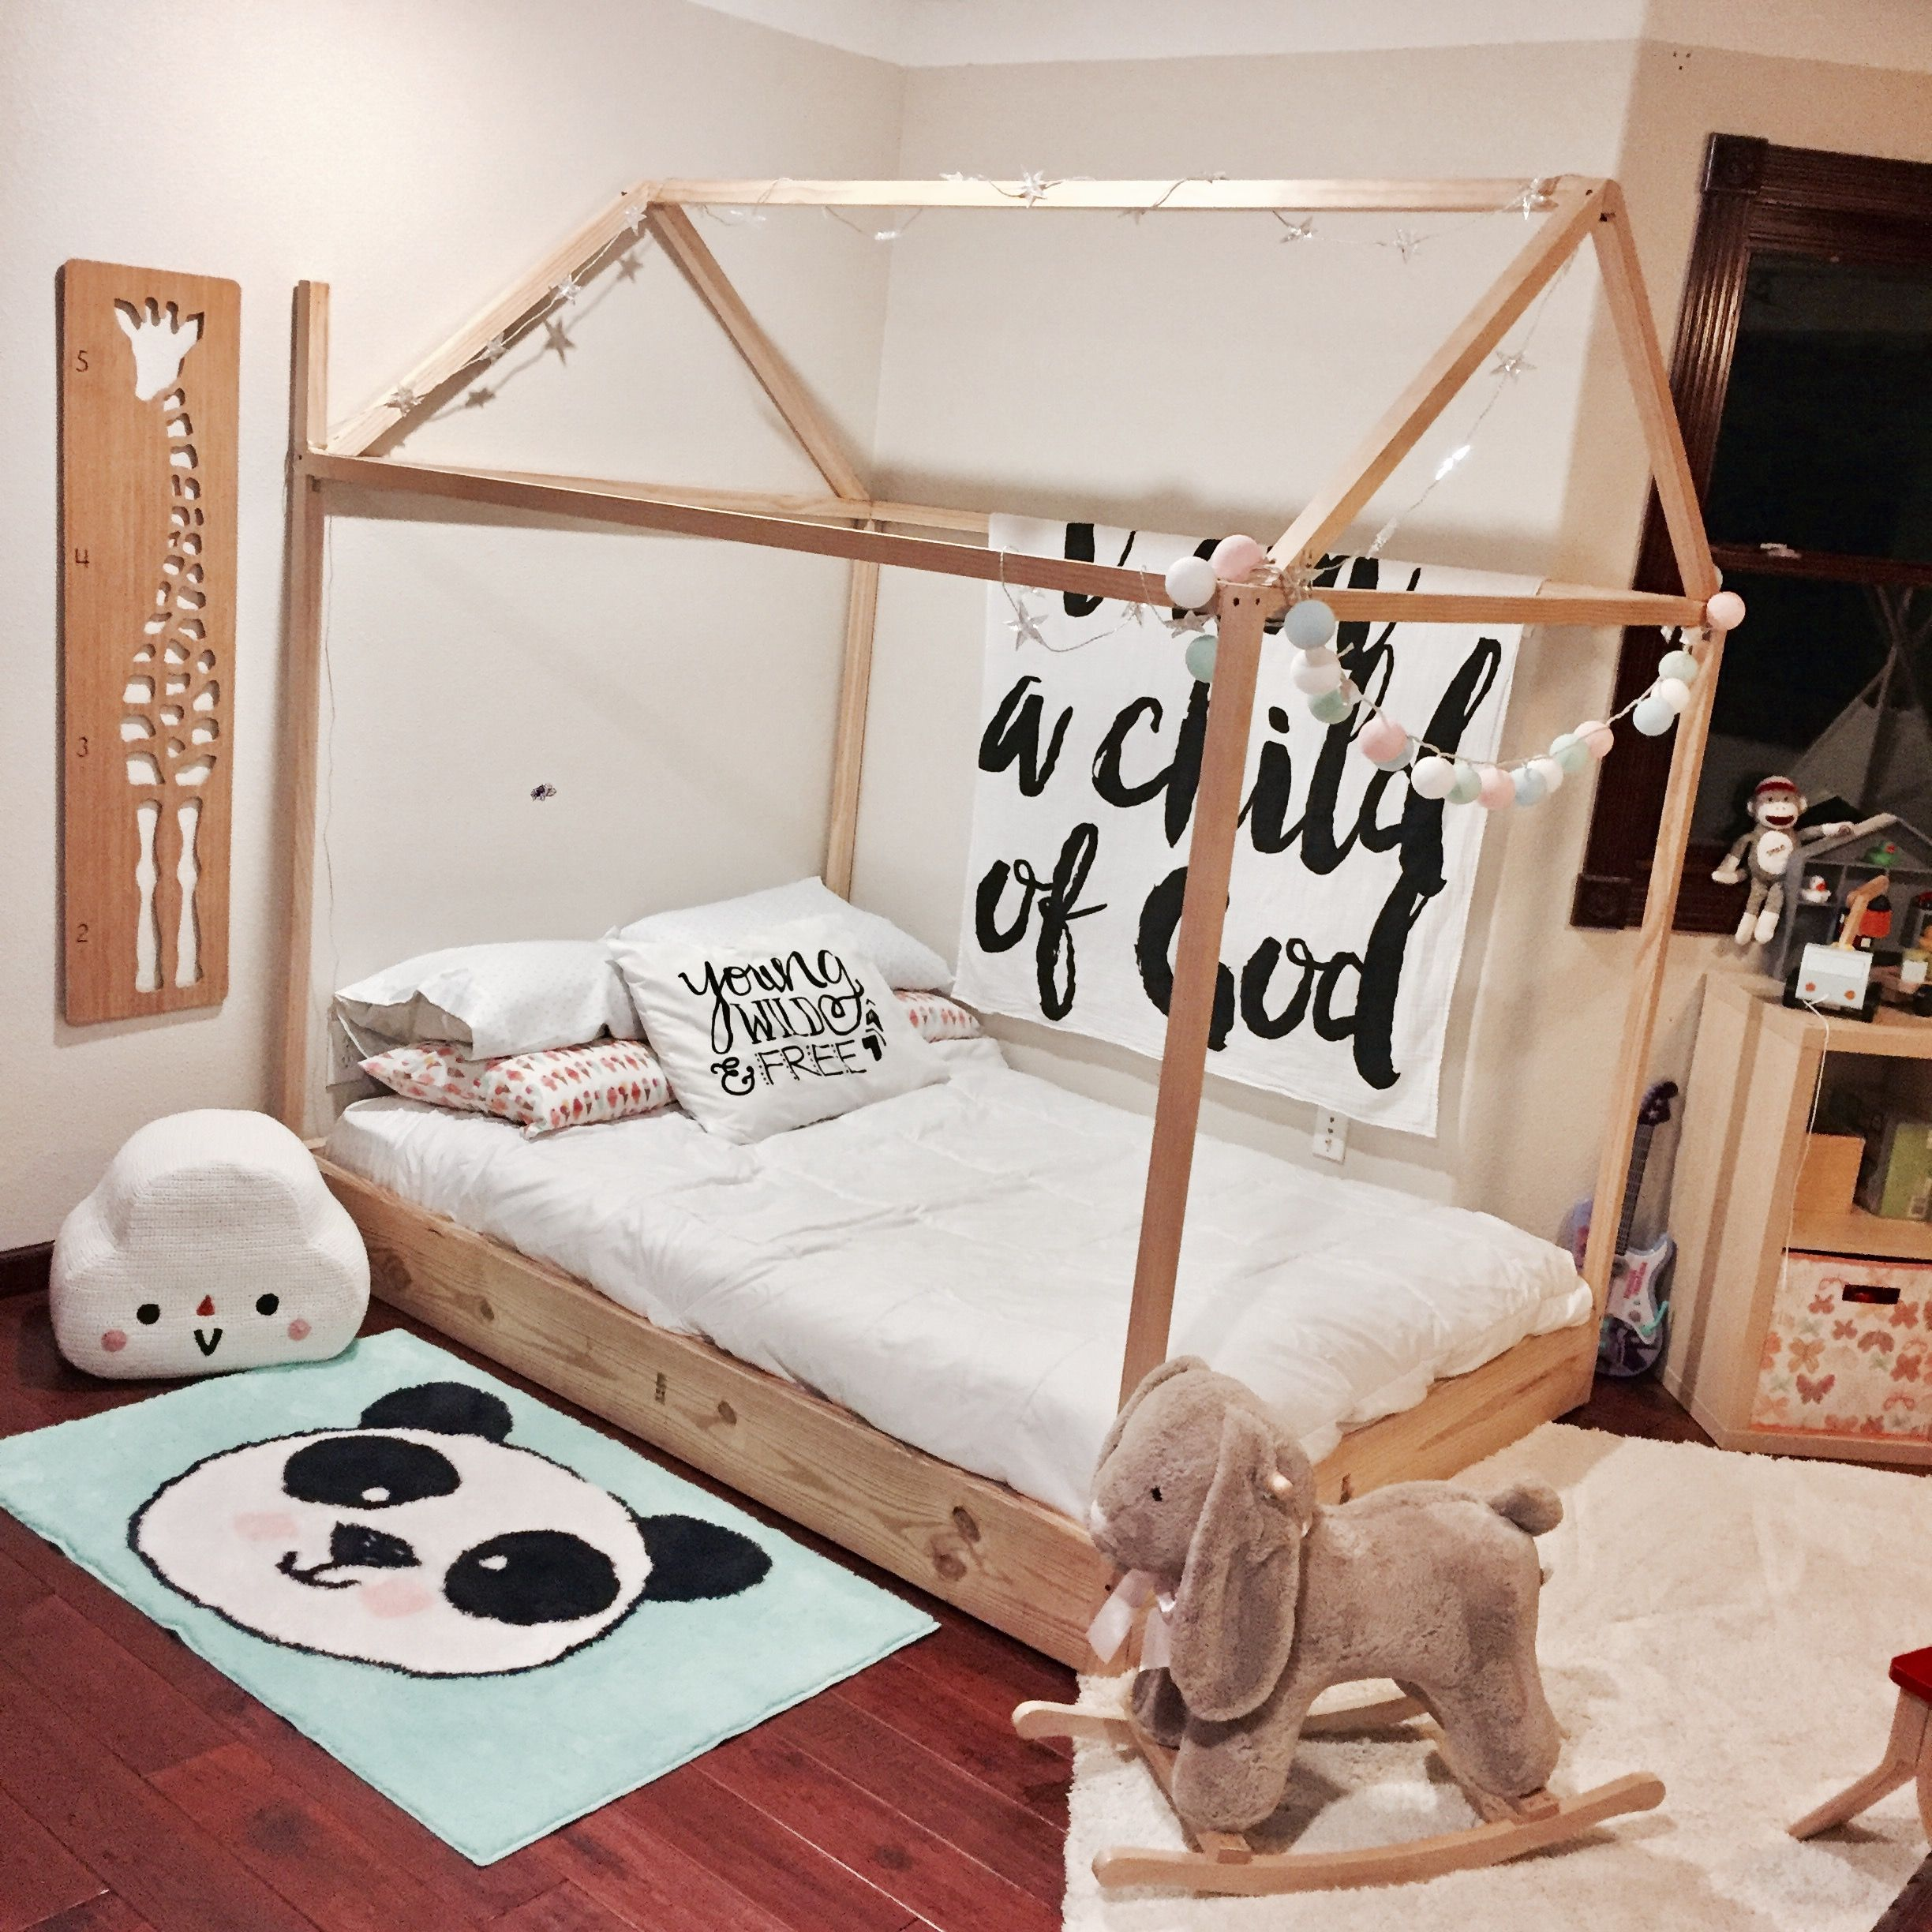 Toddler Full Size Floor Bed | Kids | Pinterest | Room, Toddler rooms ...